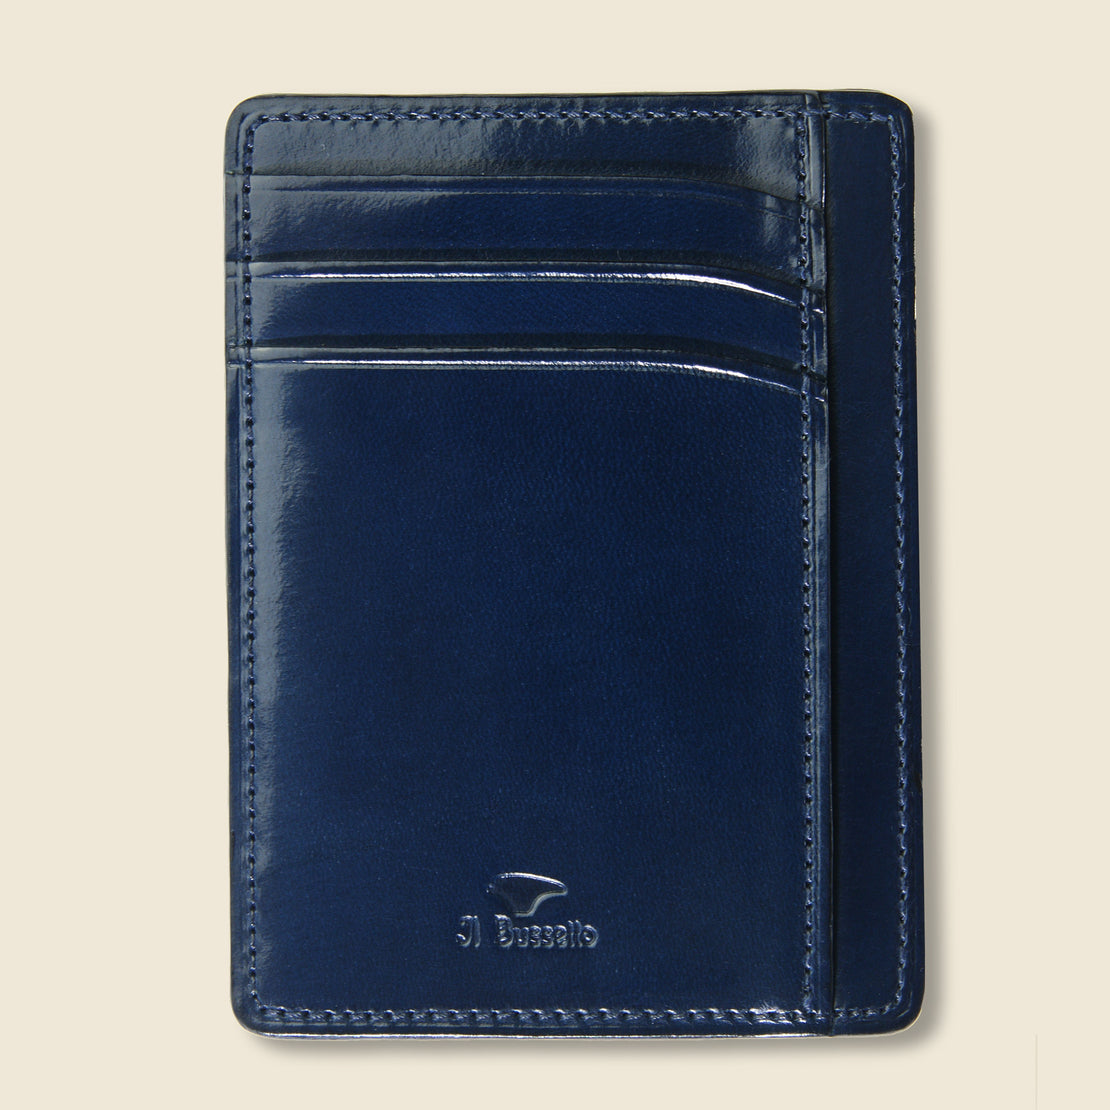 Il Bussetto Card and Document Case - Navy